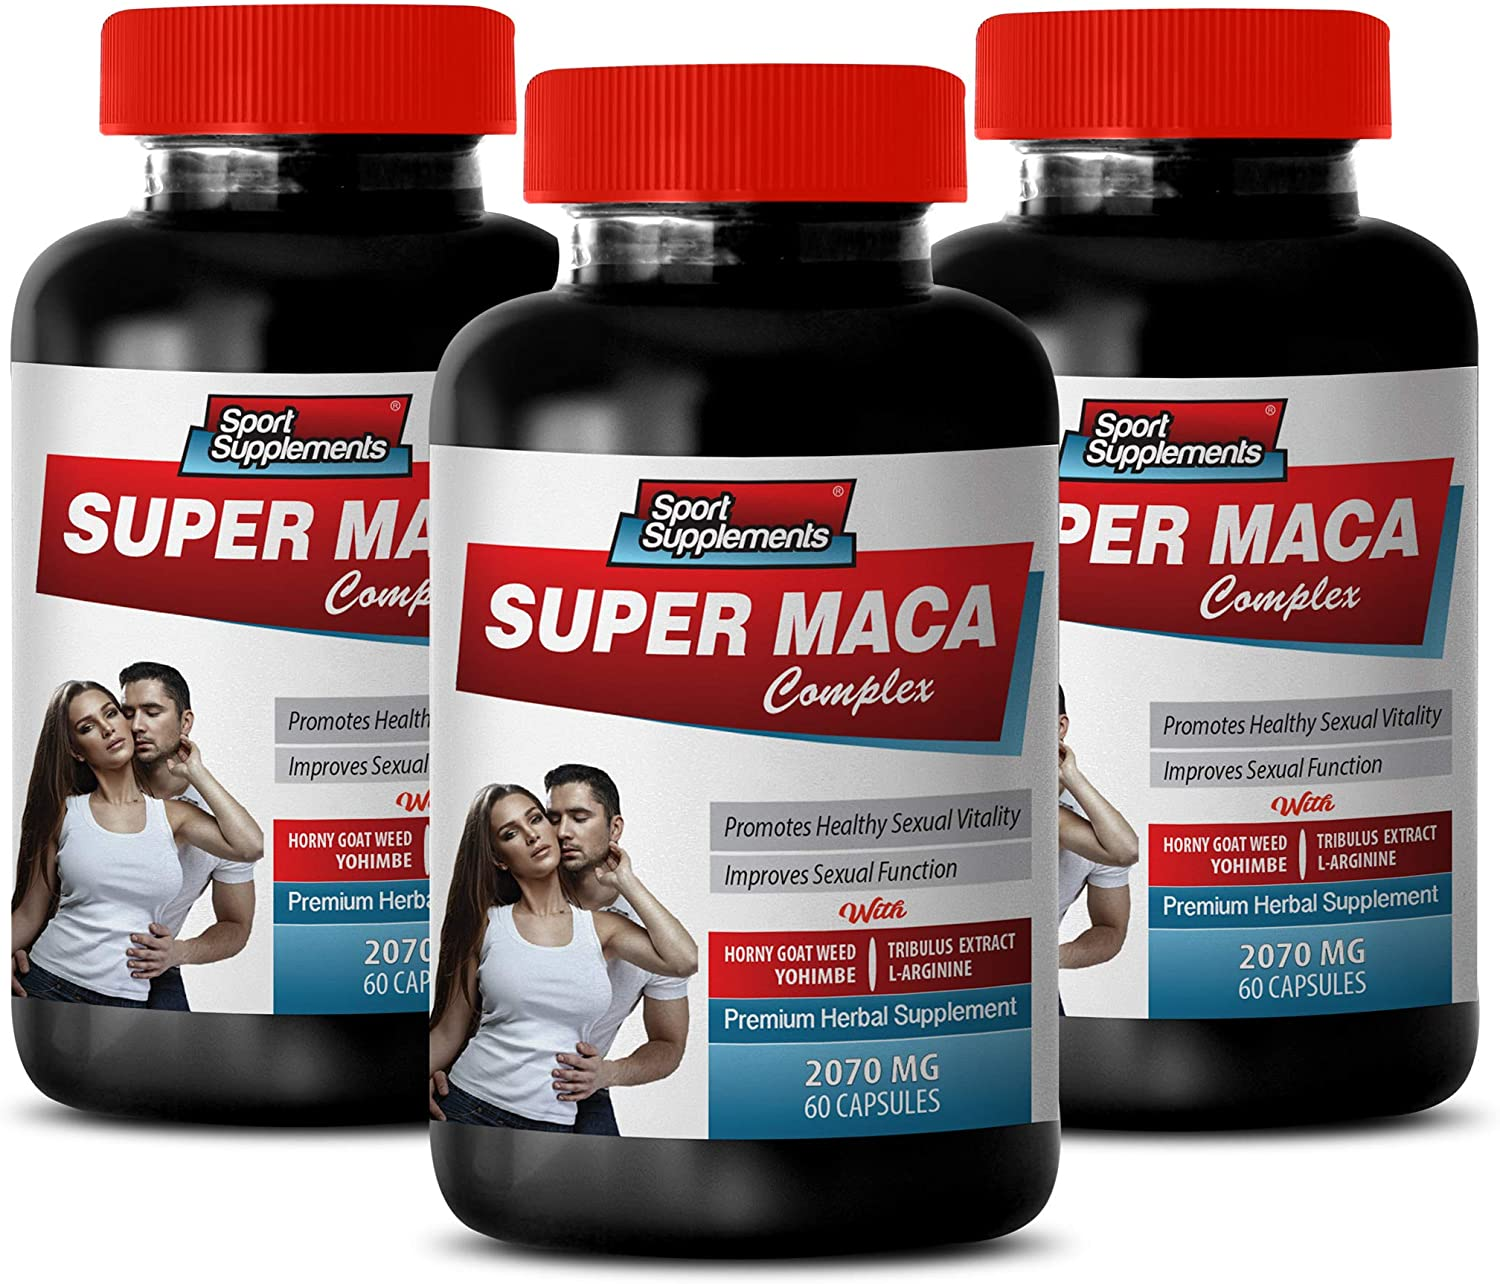 Testosterone Booster with Horny Goat Weed - Super MACA Complex - Premium Herbal Supplements - l-arginine Horny Goat Weed - 3 Bottles 180 Capsules